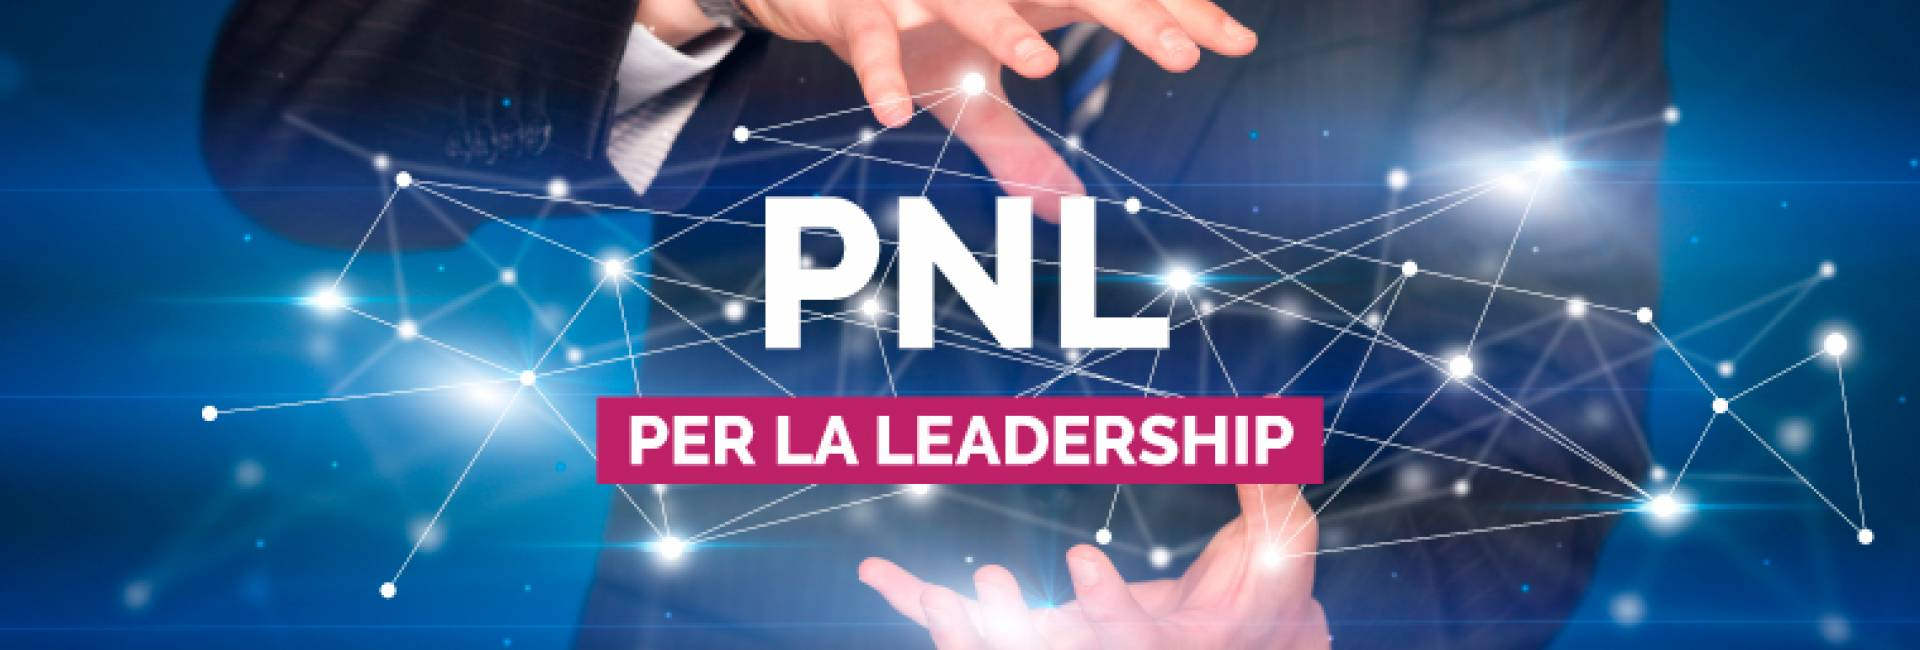 PNL PER LA LEADERSHIP